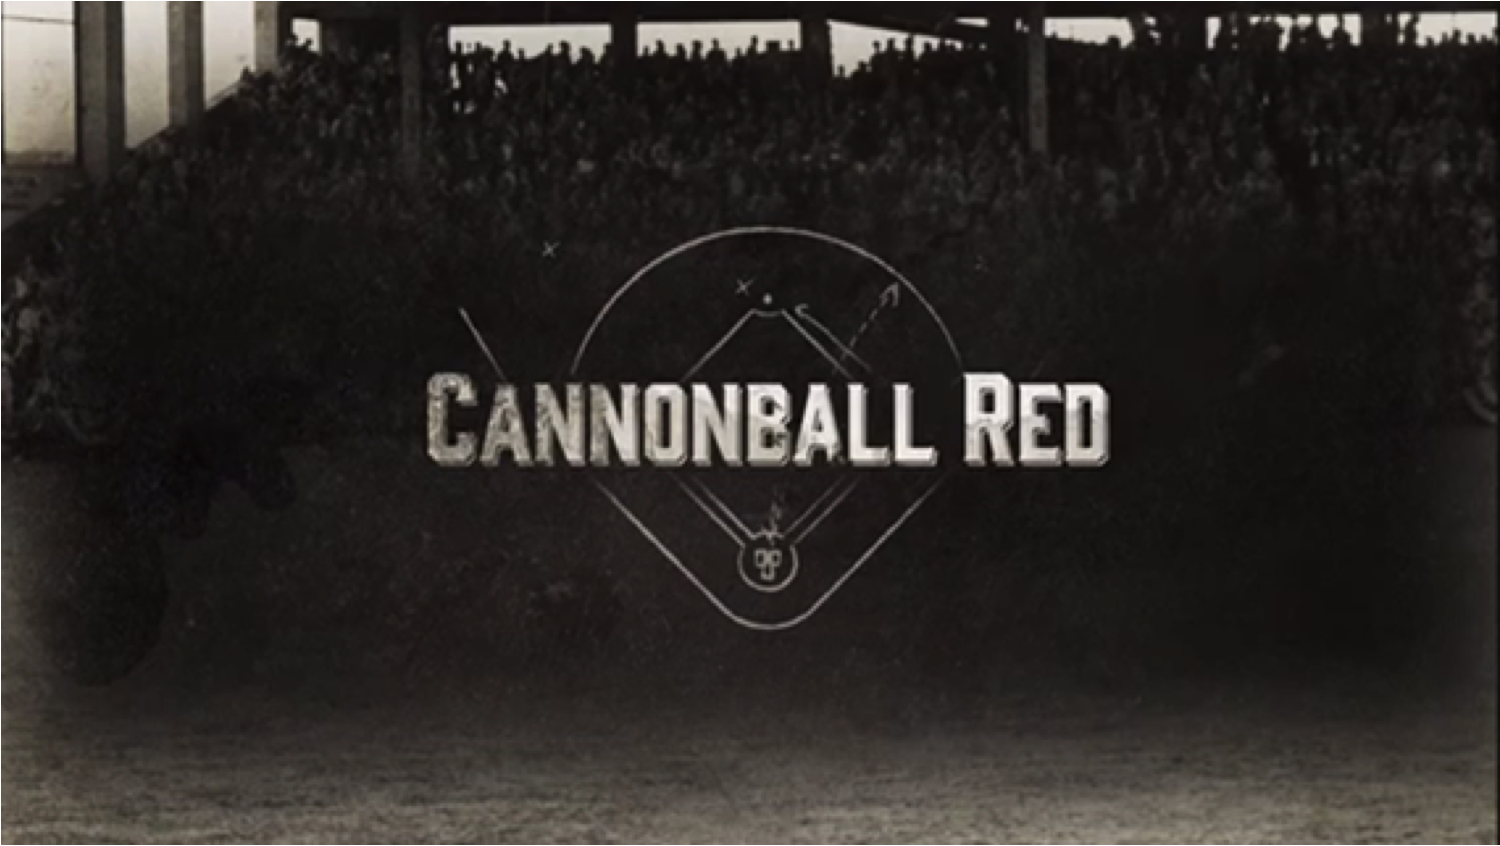 FEATURE FILM - CANNONBALL RED